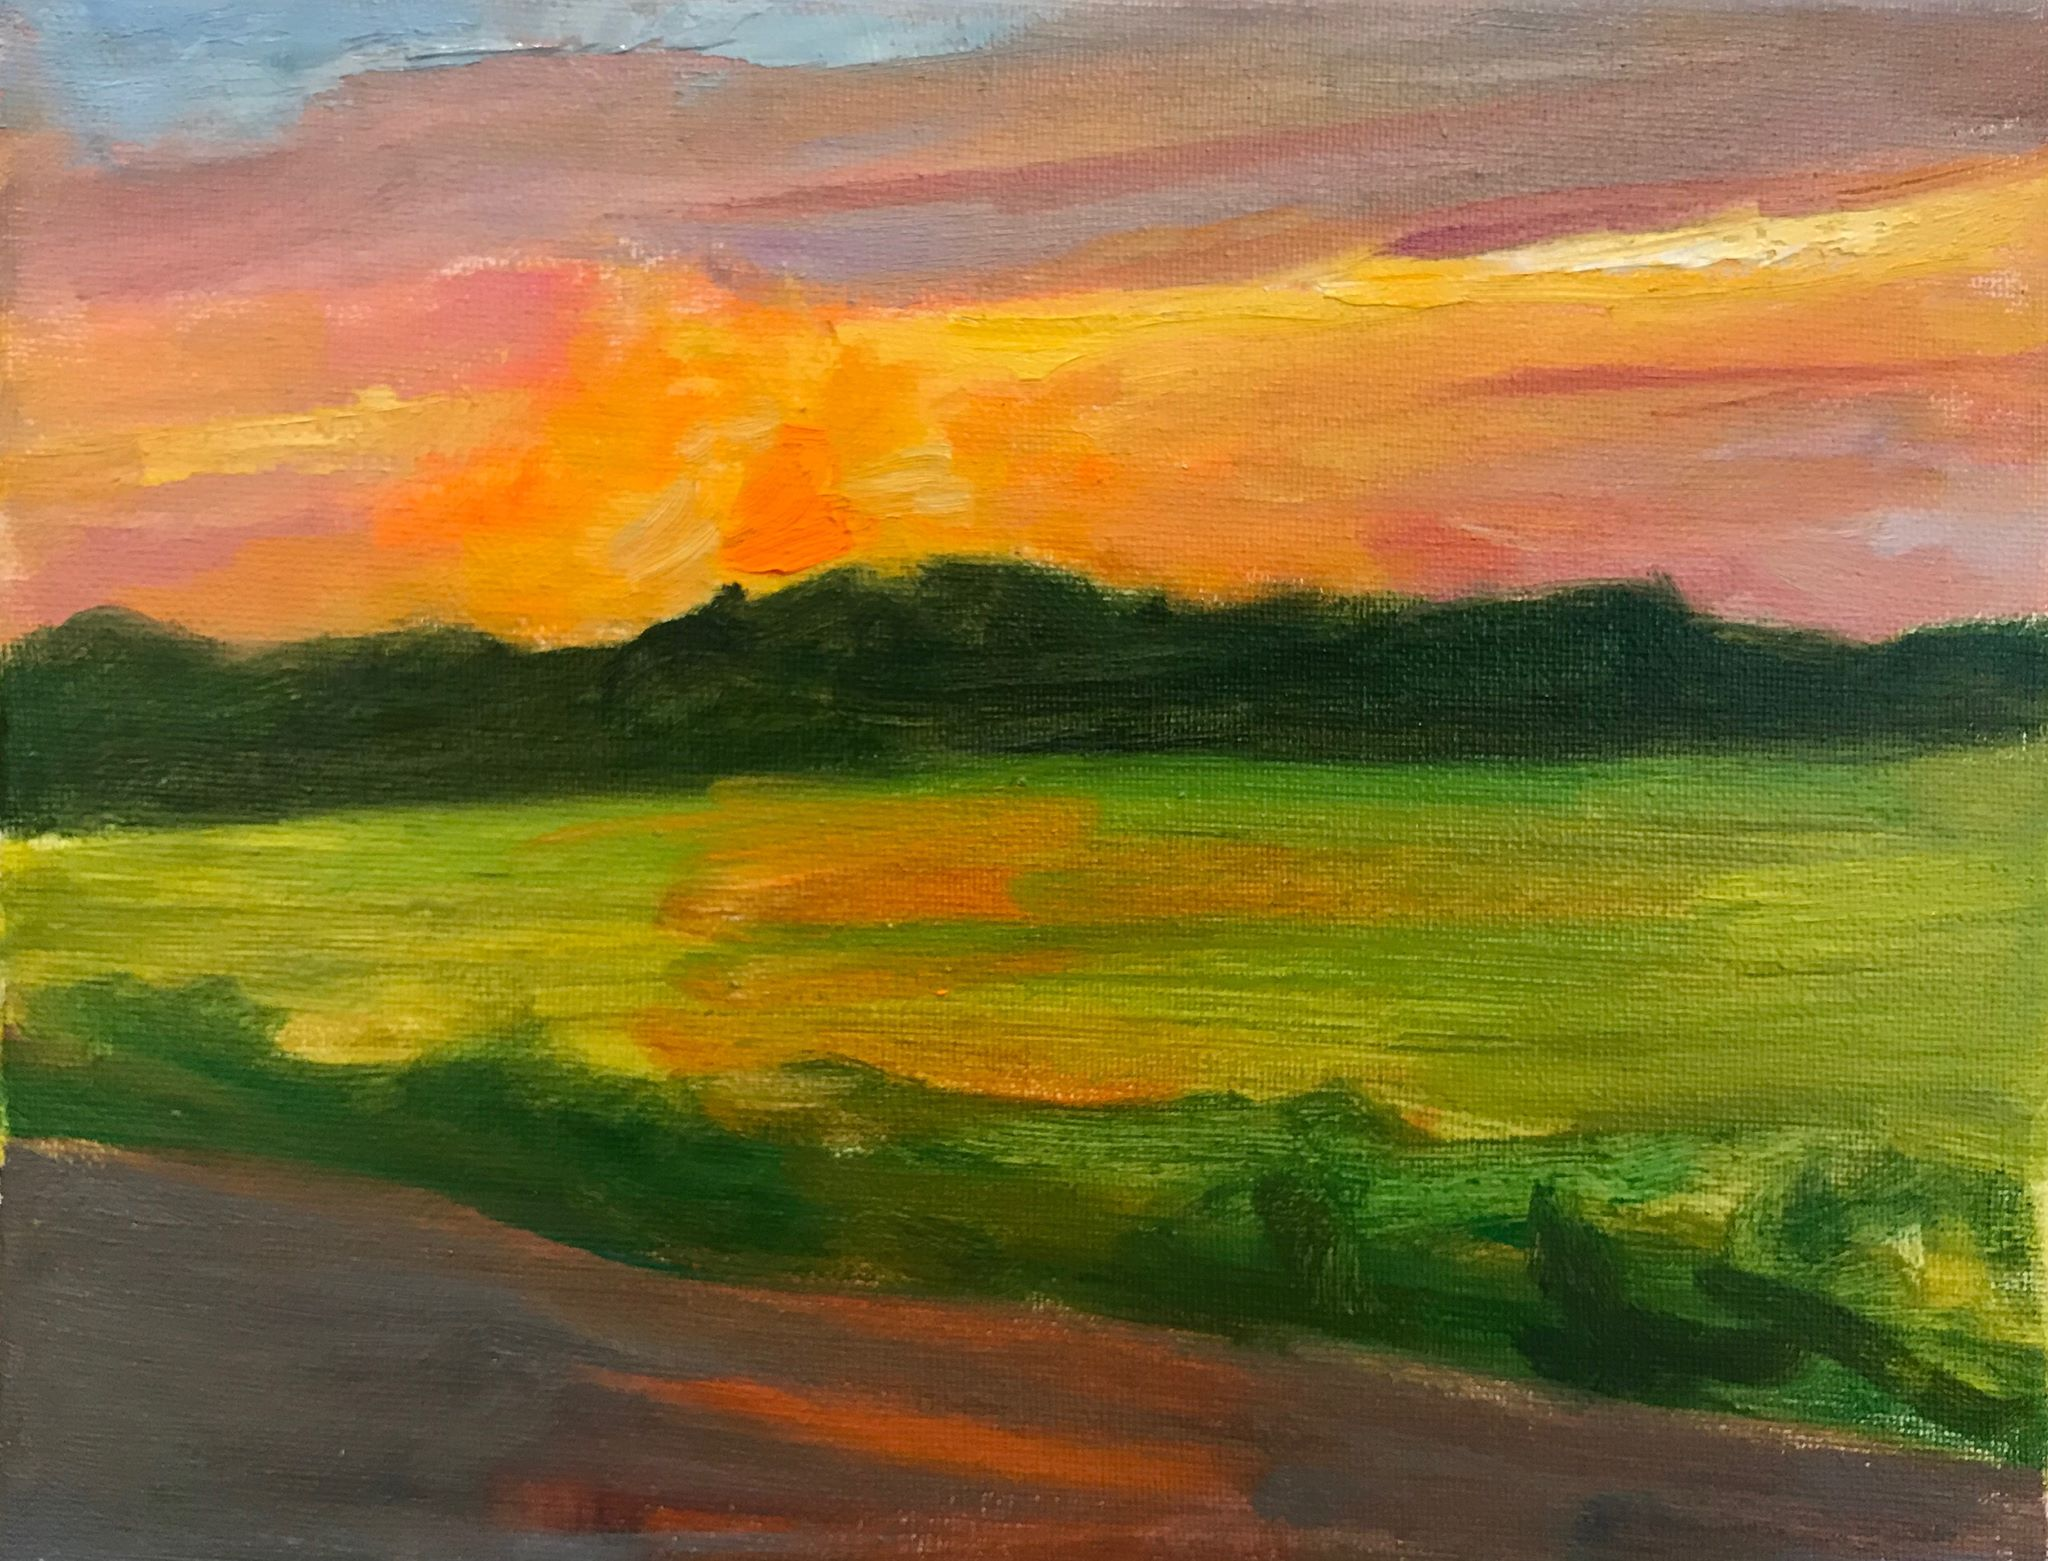 """Sunset over a Farm Field""    oil on canvas, 8x10 inches"